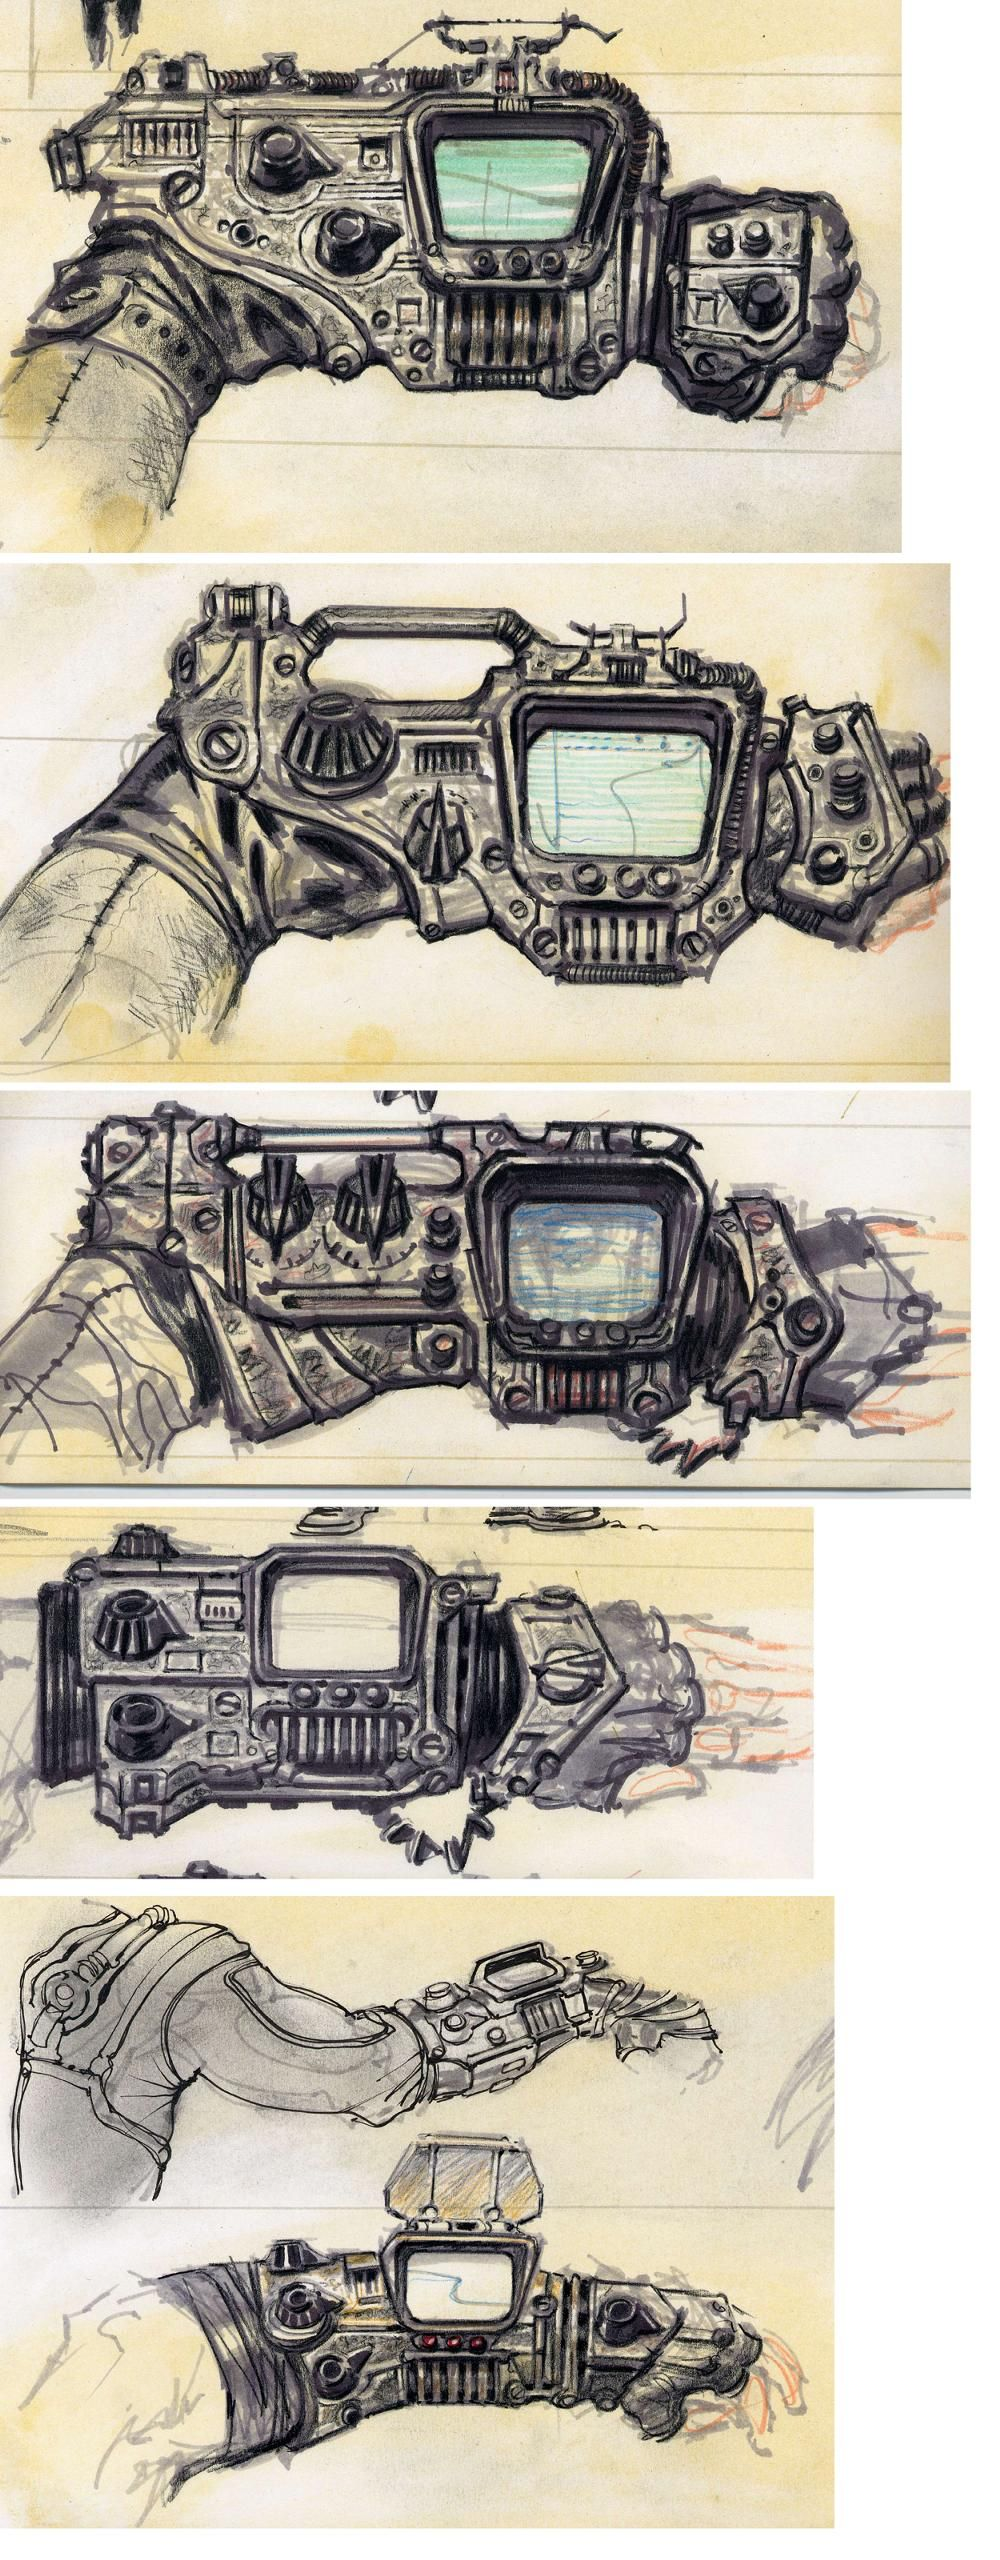 Pip-Boy 3000 - The Fallout wiki - Fallout: New Vegas and more